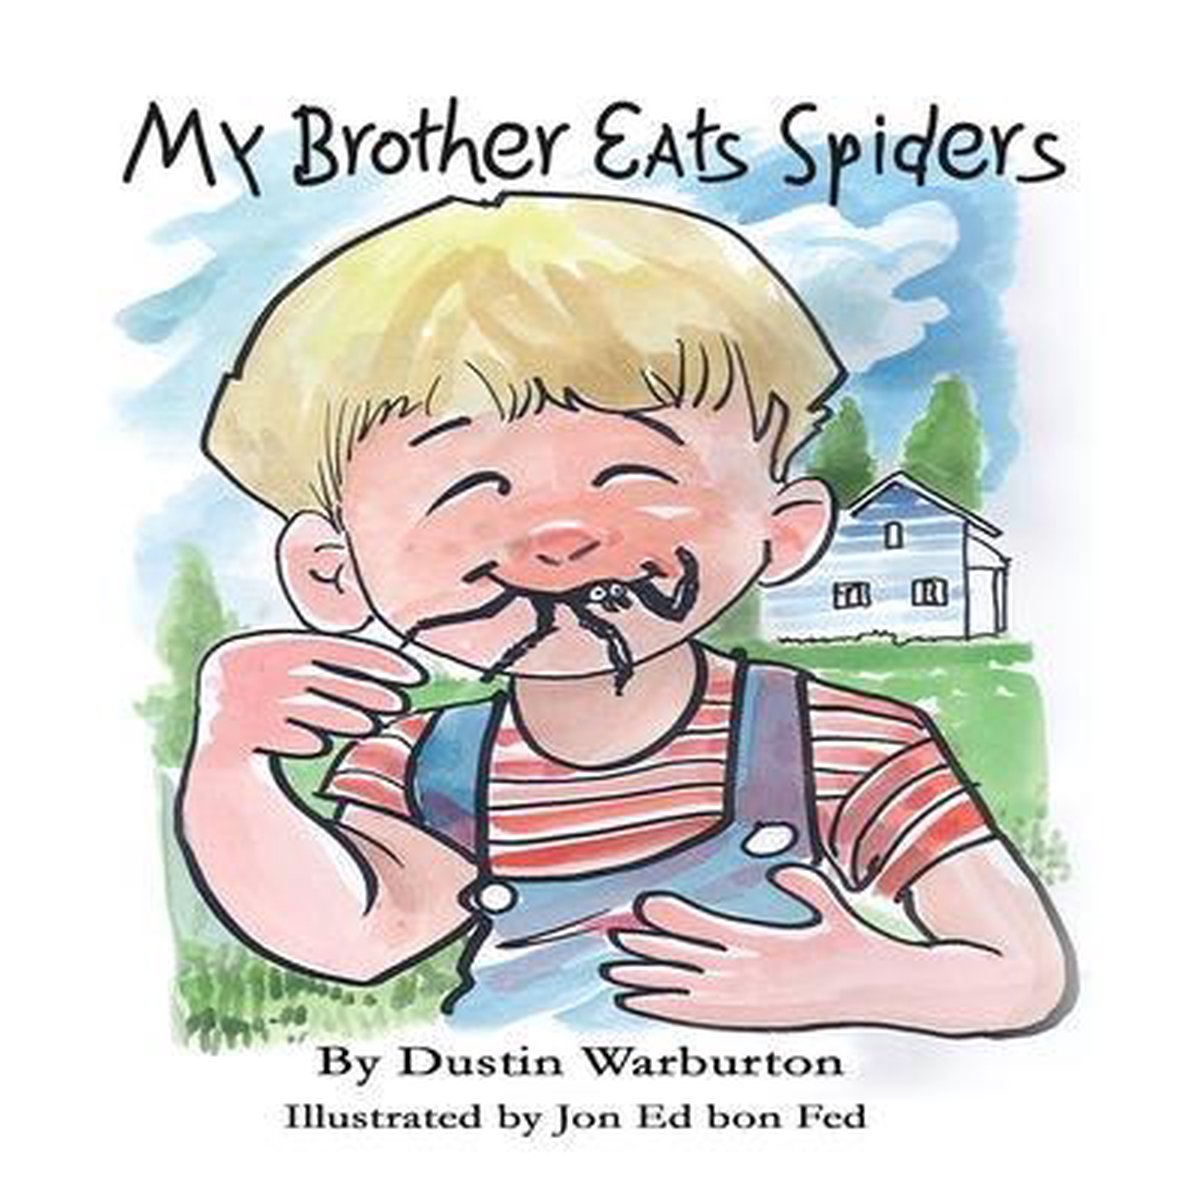 My Brother Eats Spiders